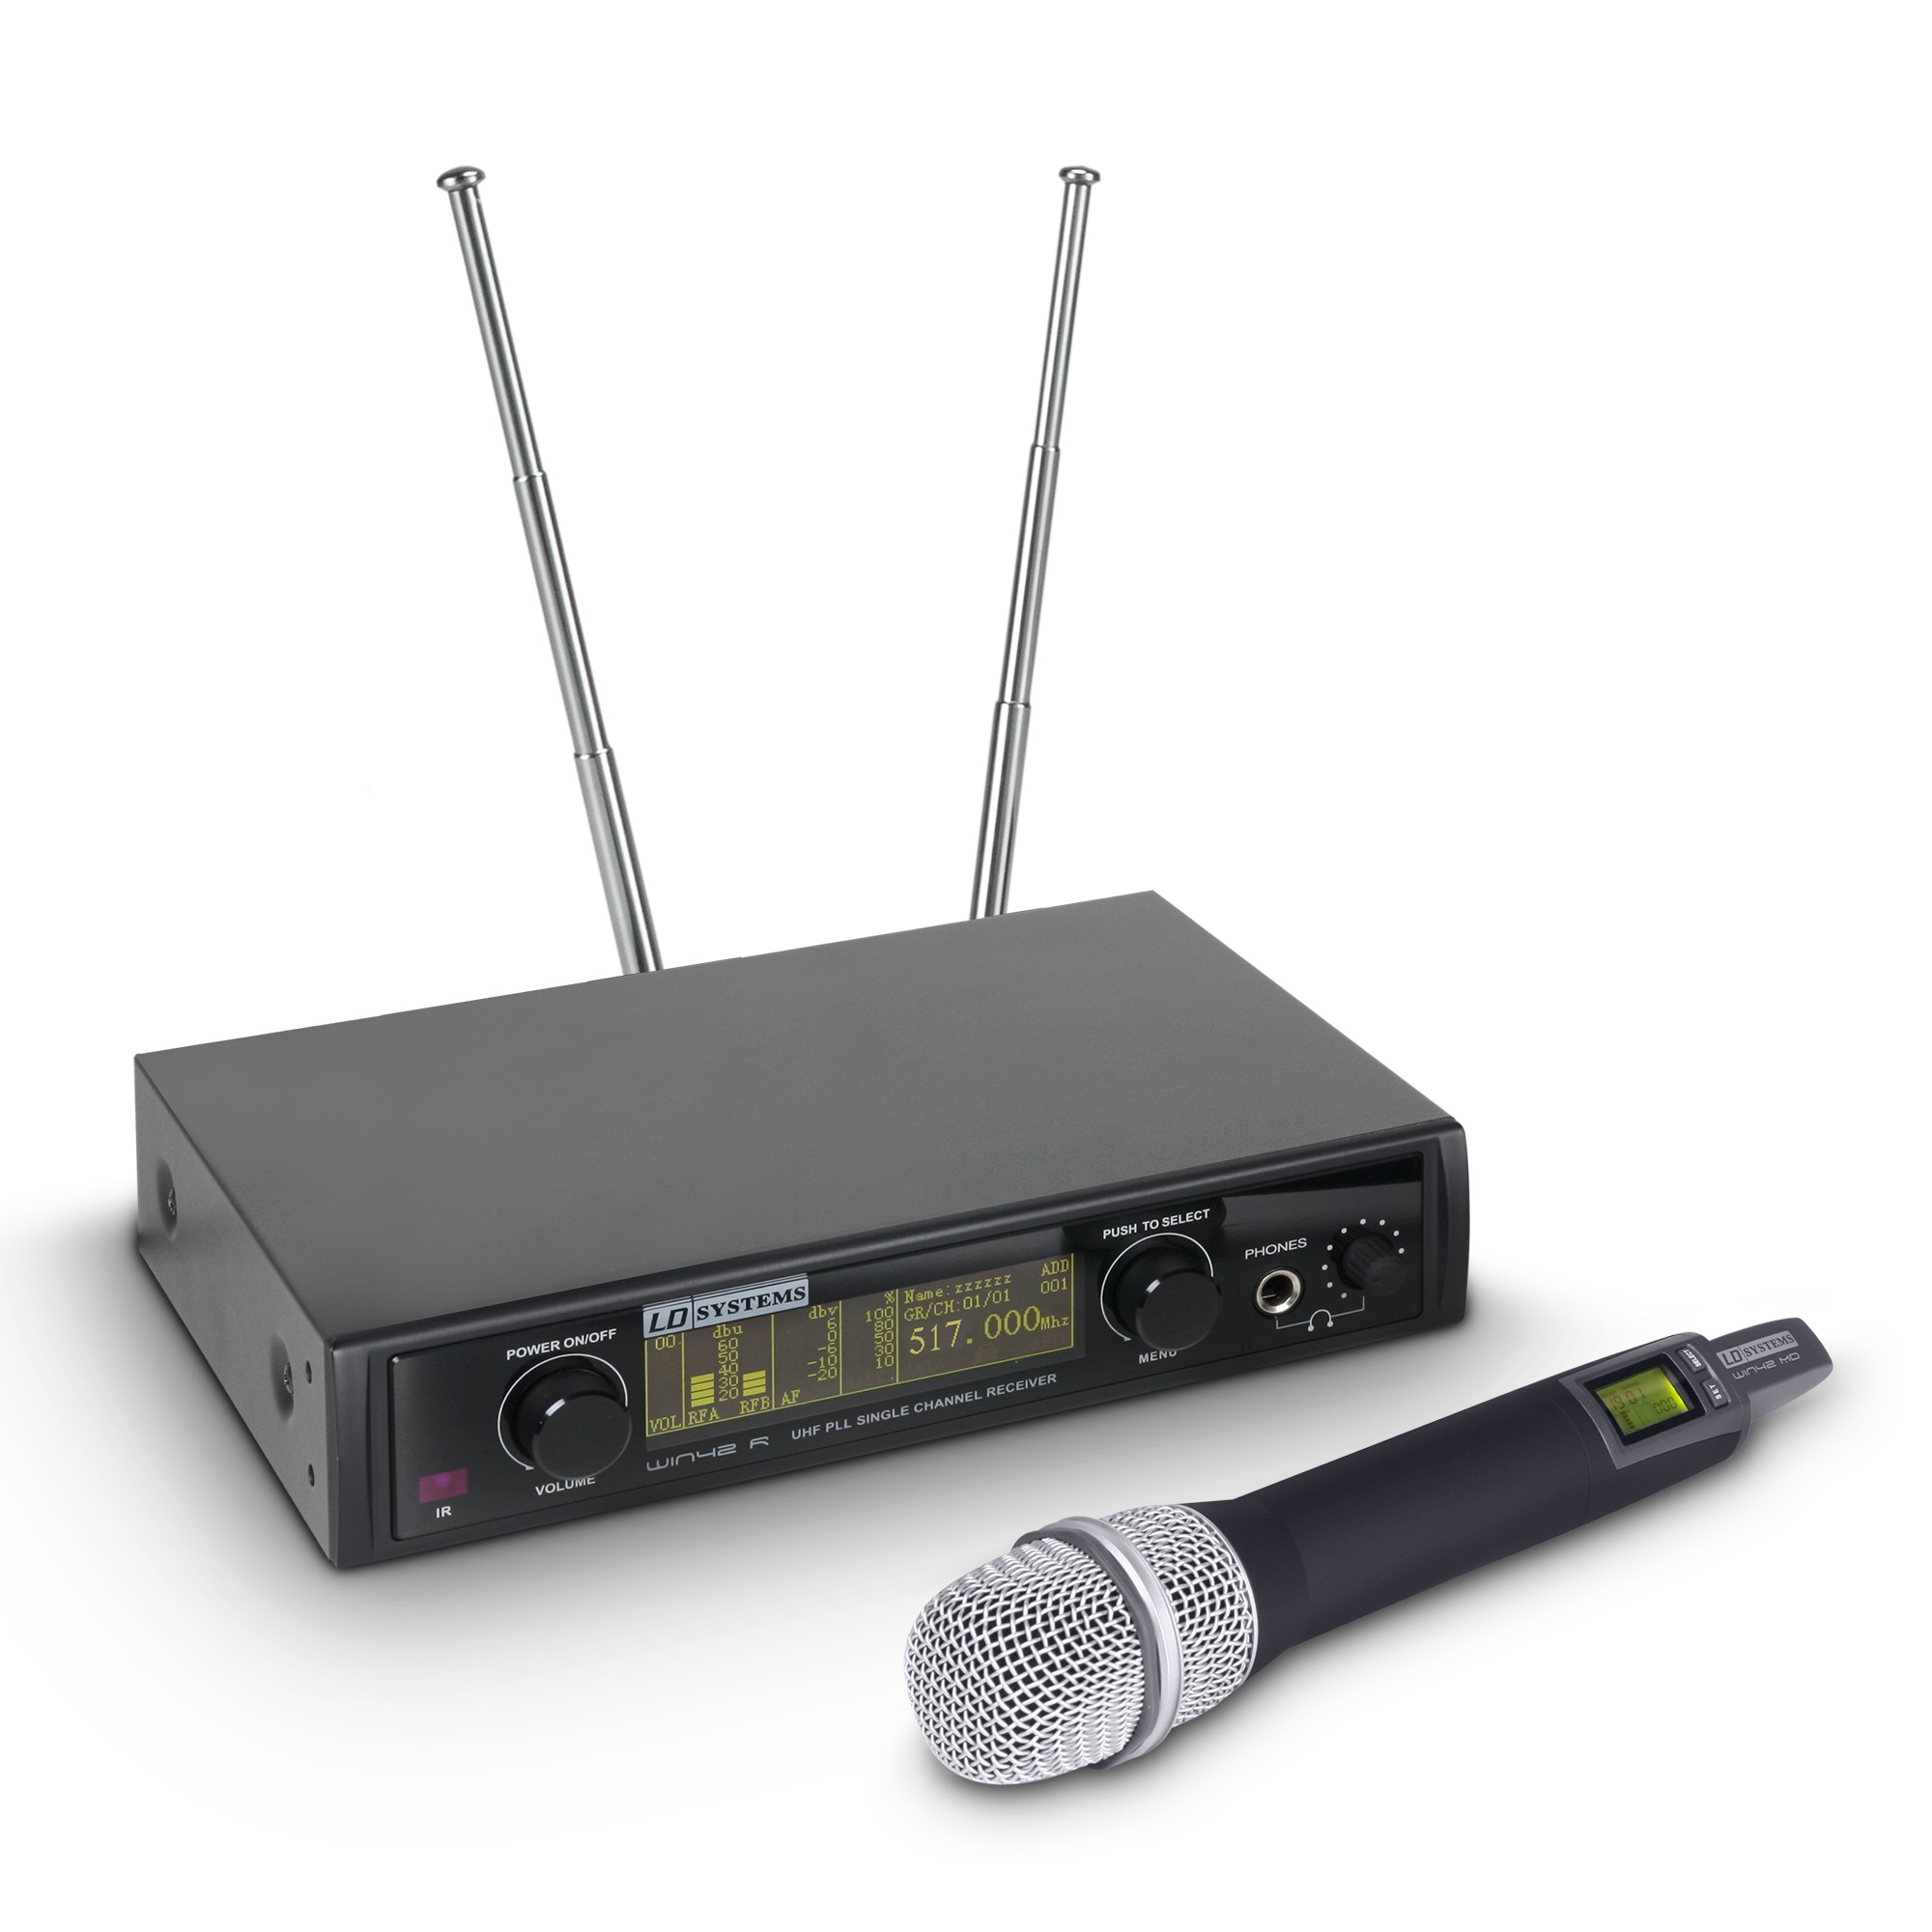 WIN 42 HHD B 5 Wireless Microphone System with Dynamic Handheld Microphone